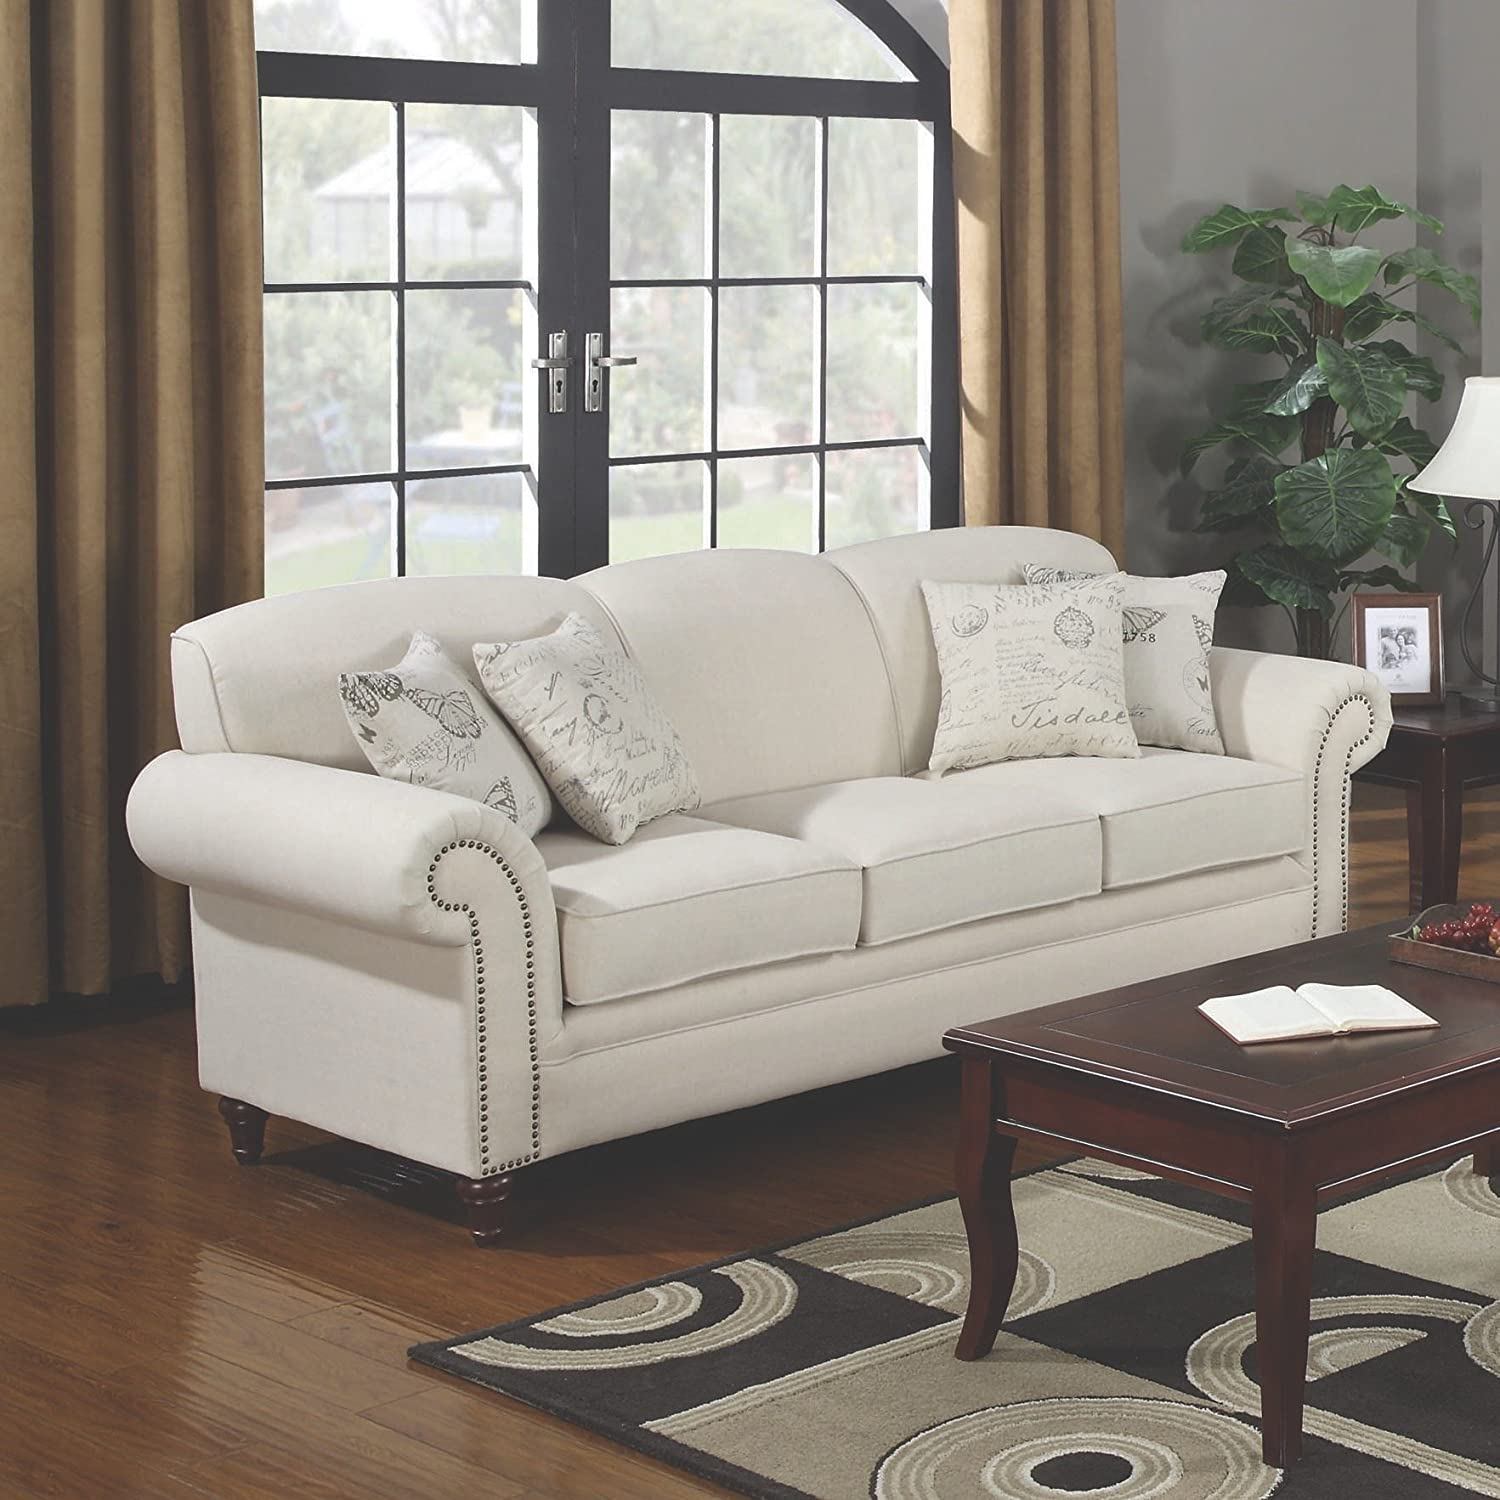 Amazon.com: Coaster Home Furnishings 501154 Traditional Sofa, Cream:  Kitchen U0026 Dining